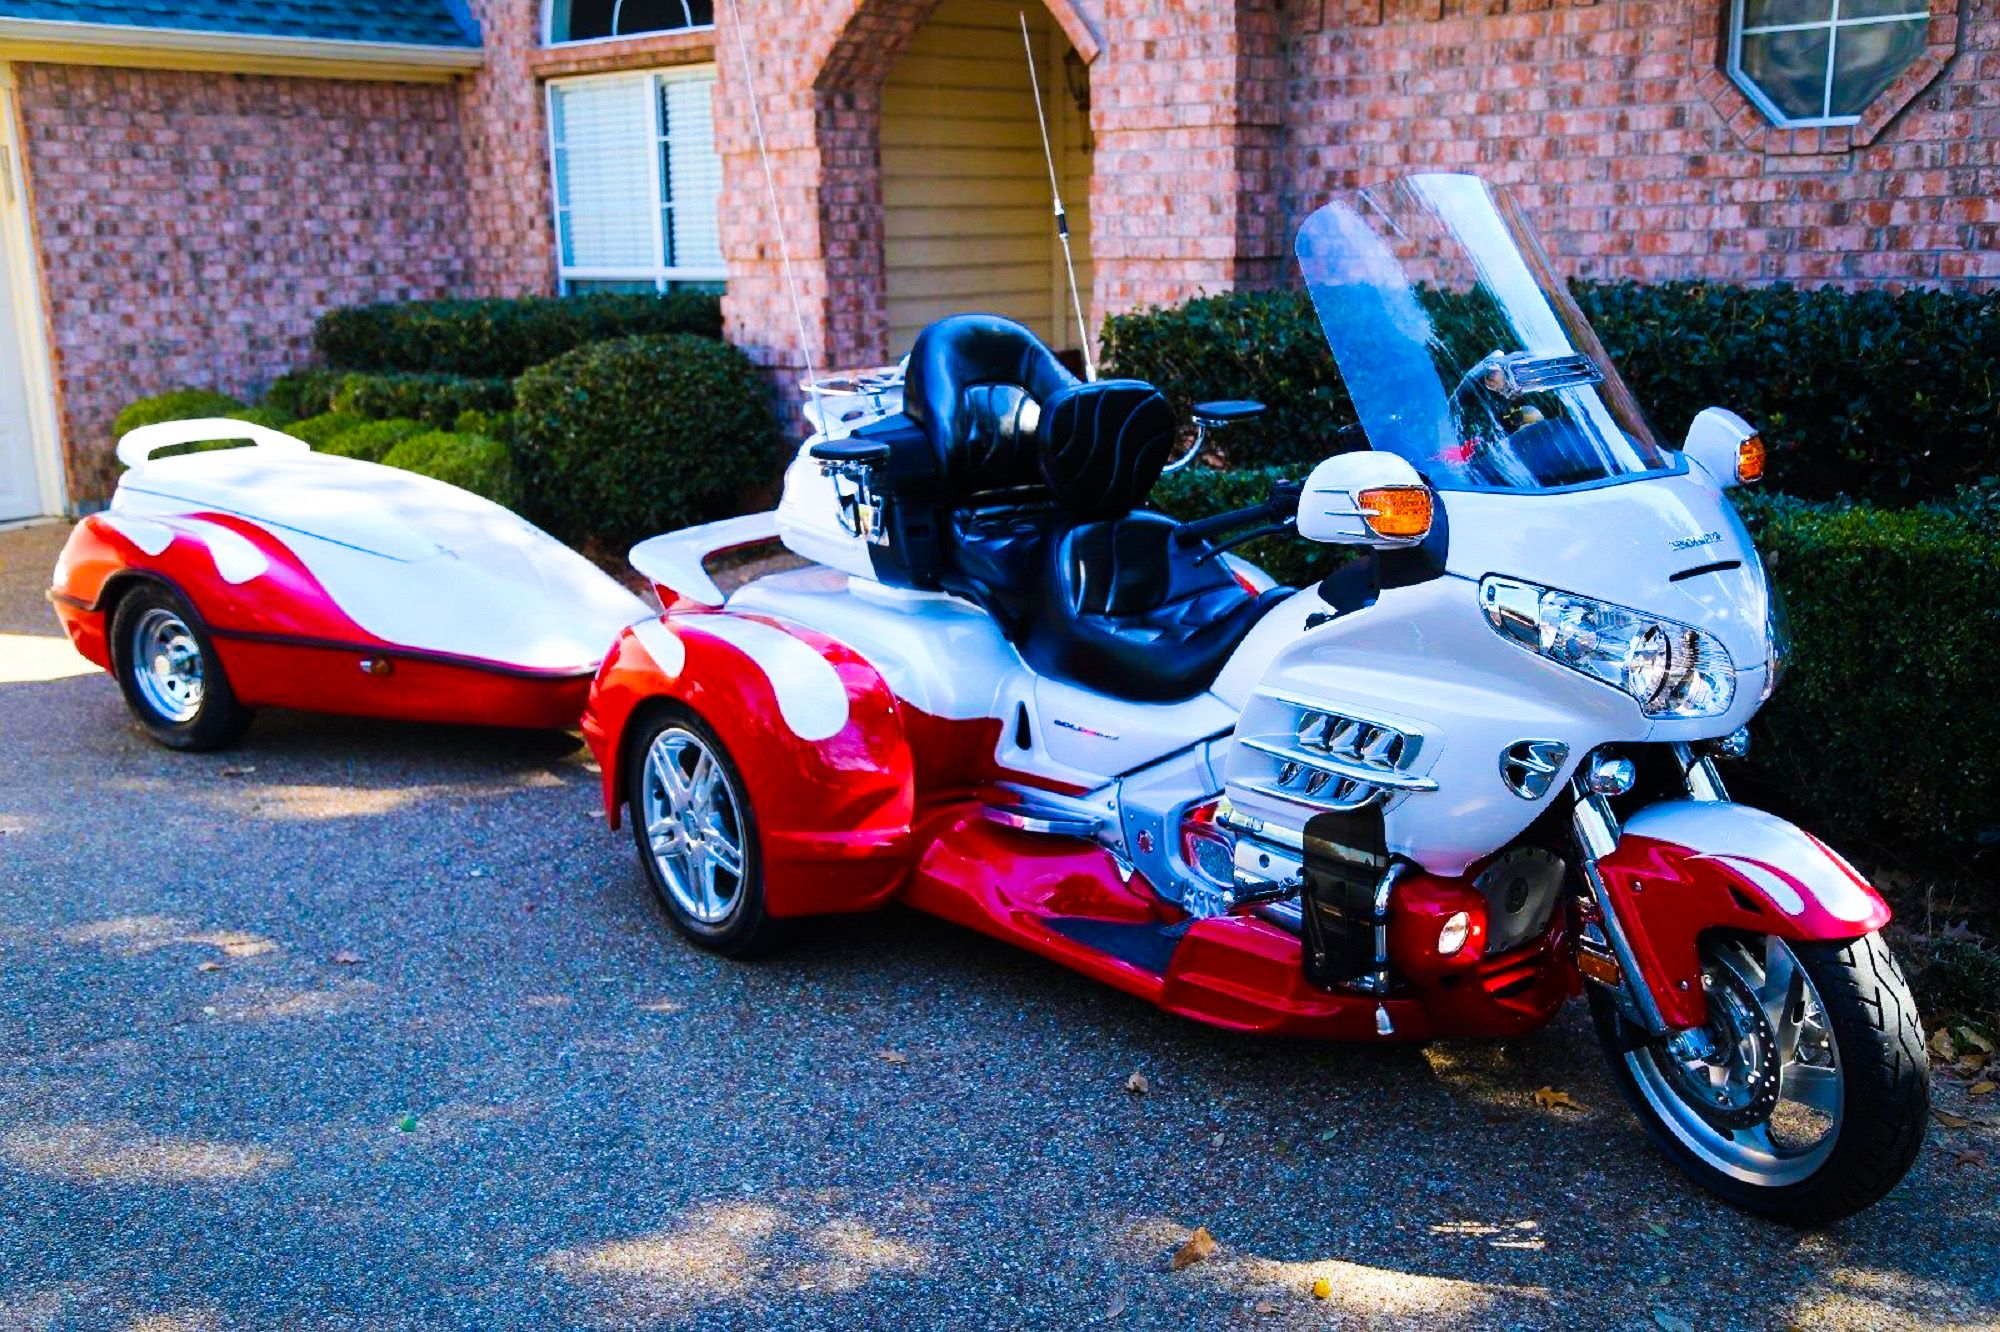 Pin by Ken Williams on Trikes | Goldwing trike, Motorcycle, Bike